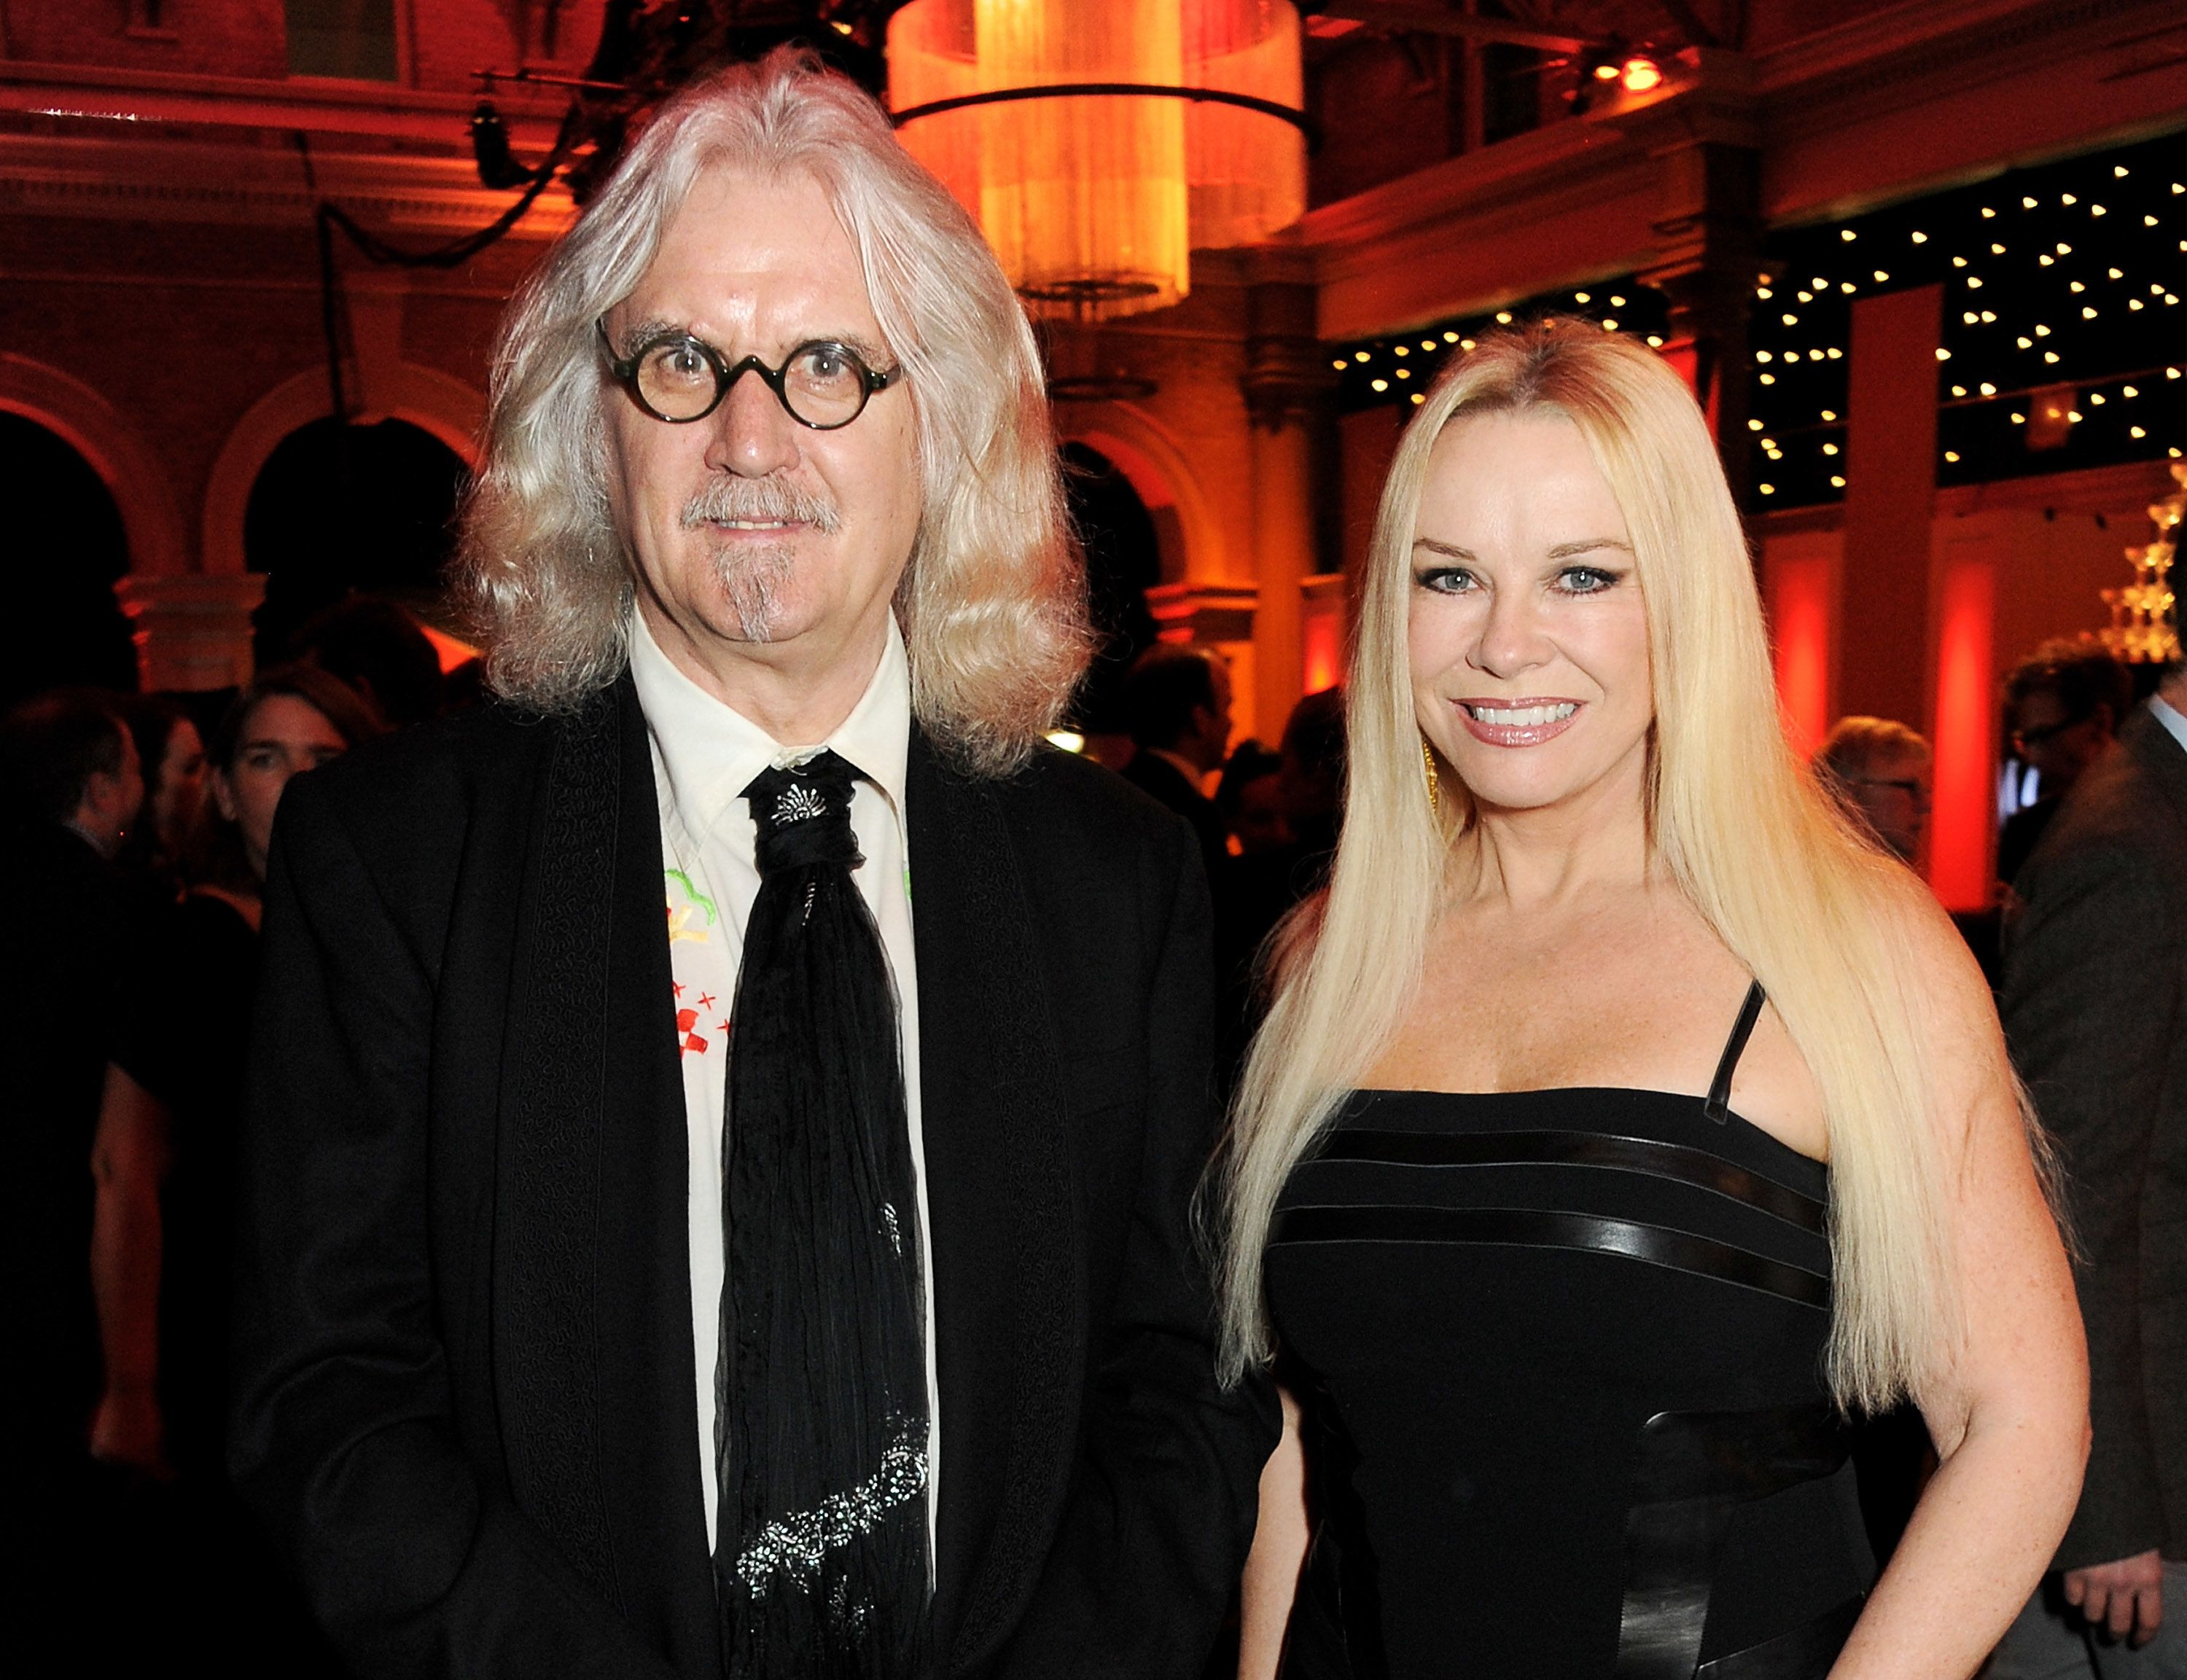 Billy Connolly's Wife Labels Michael Parkinson 'A Daft Old Fart' For Saying Comedian's 'Brain Has